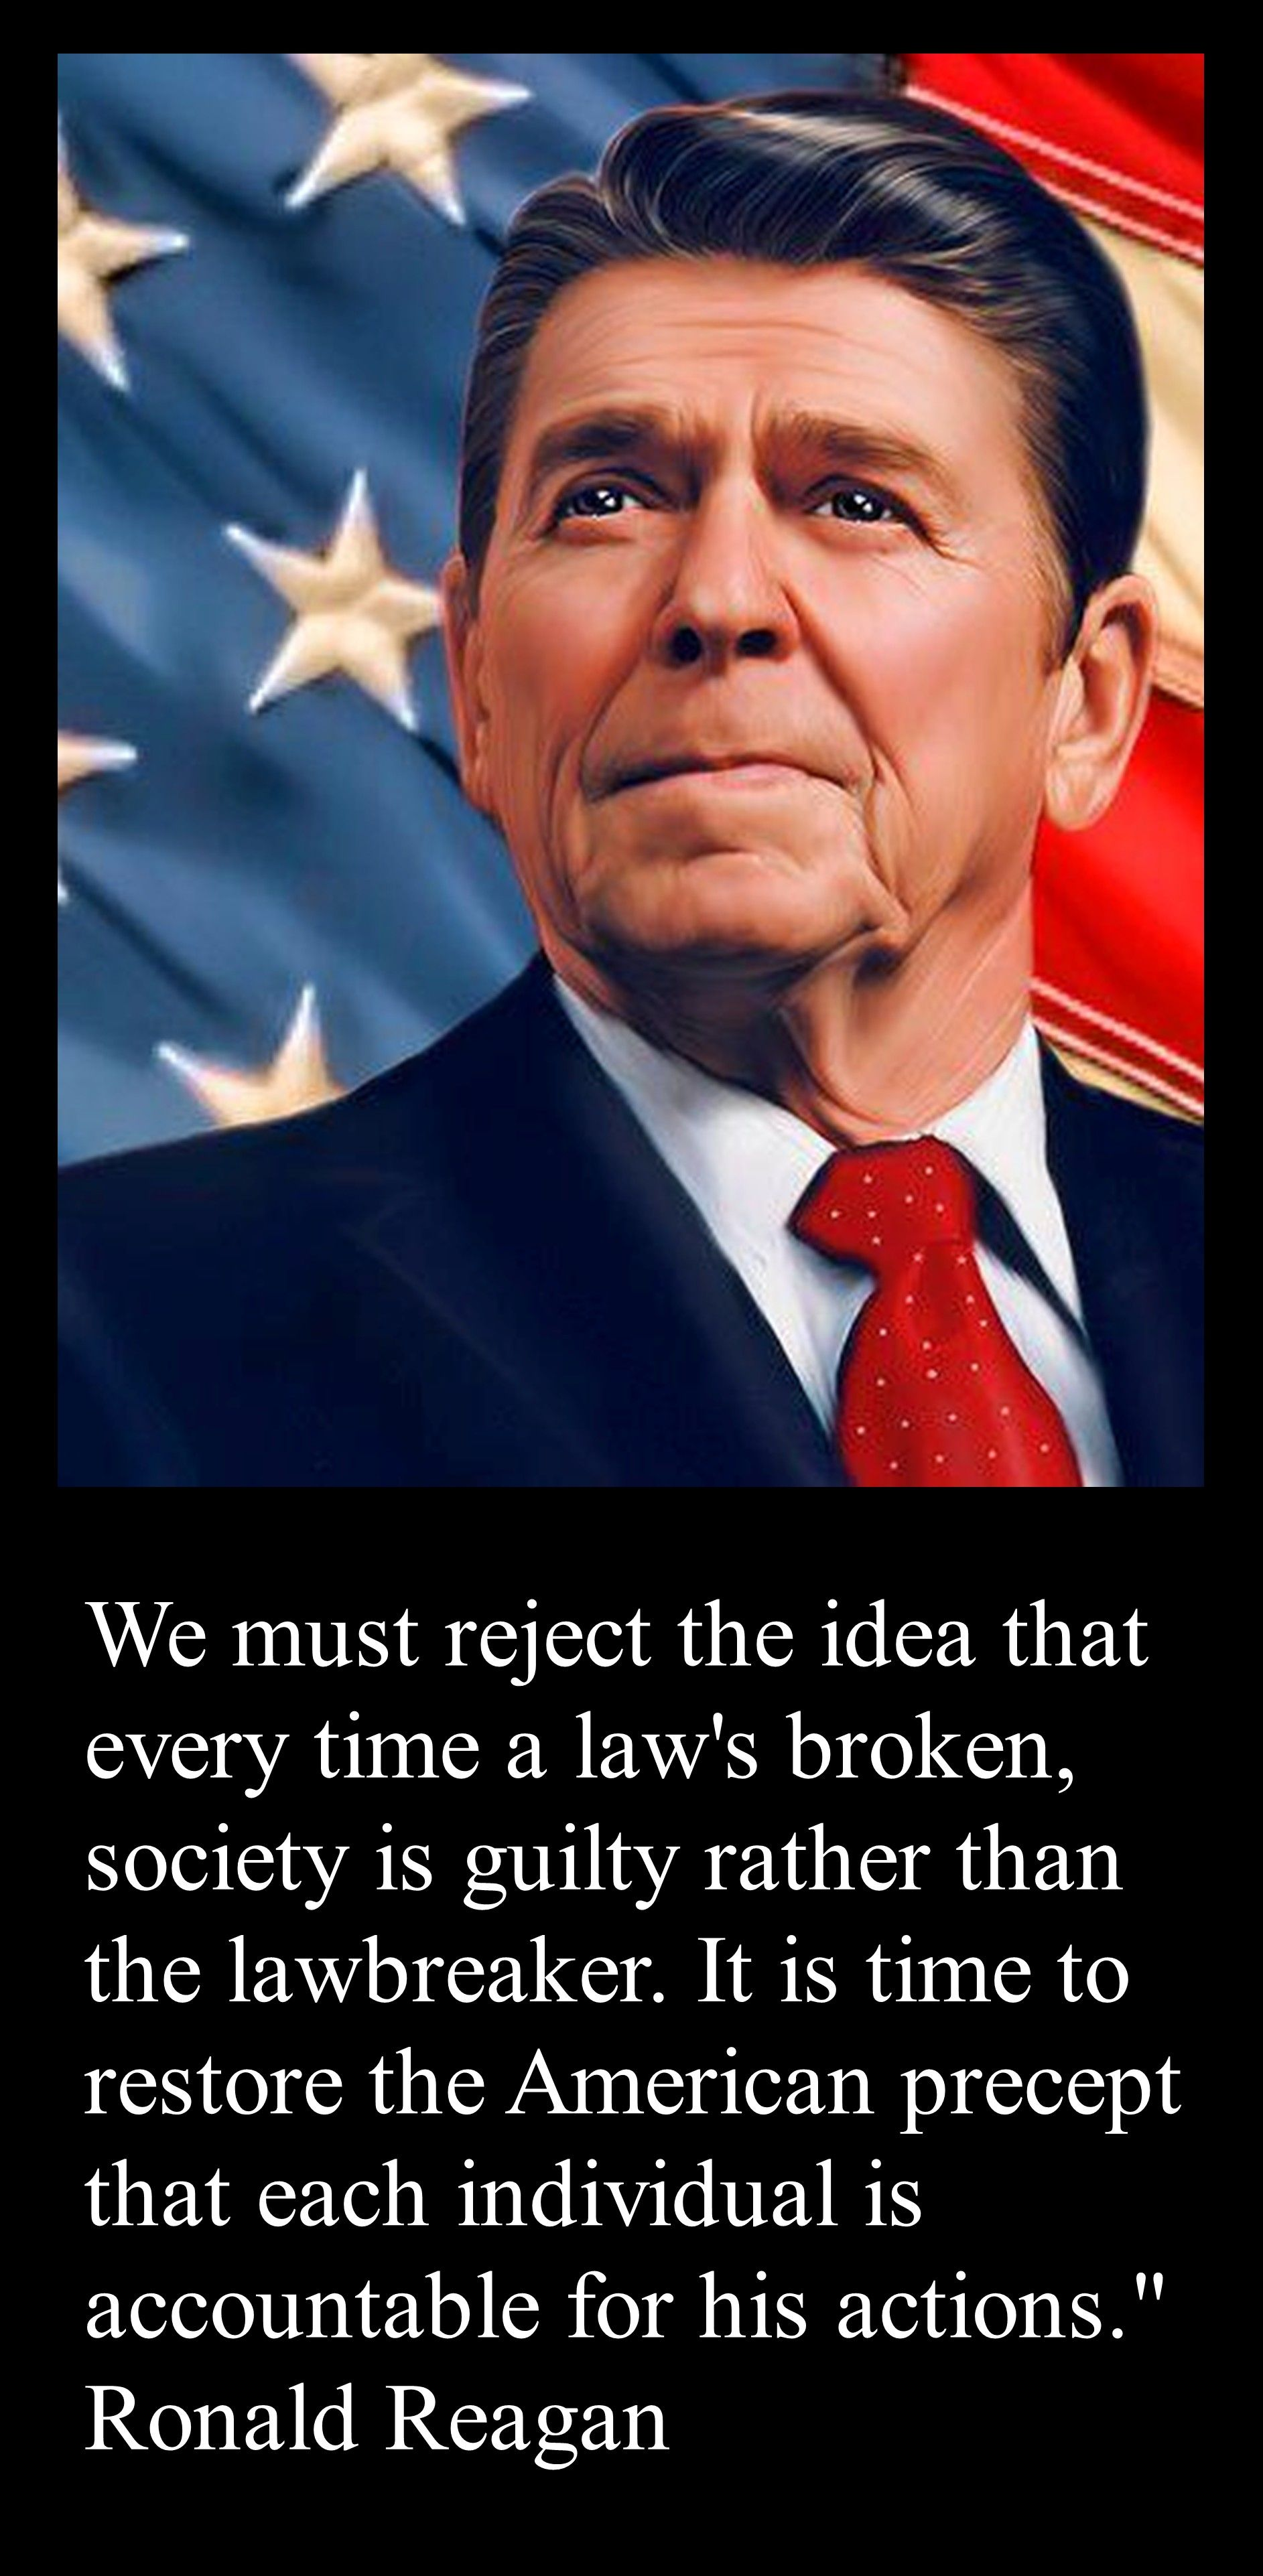 Ronald Reagan Love Quotes Reagani Love This Manwish He Was Still With Us But What A